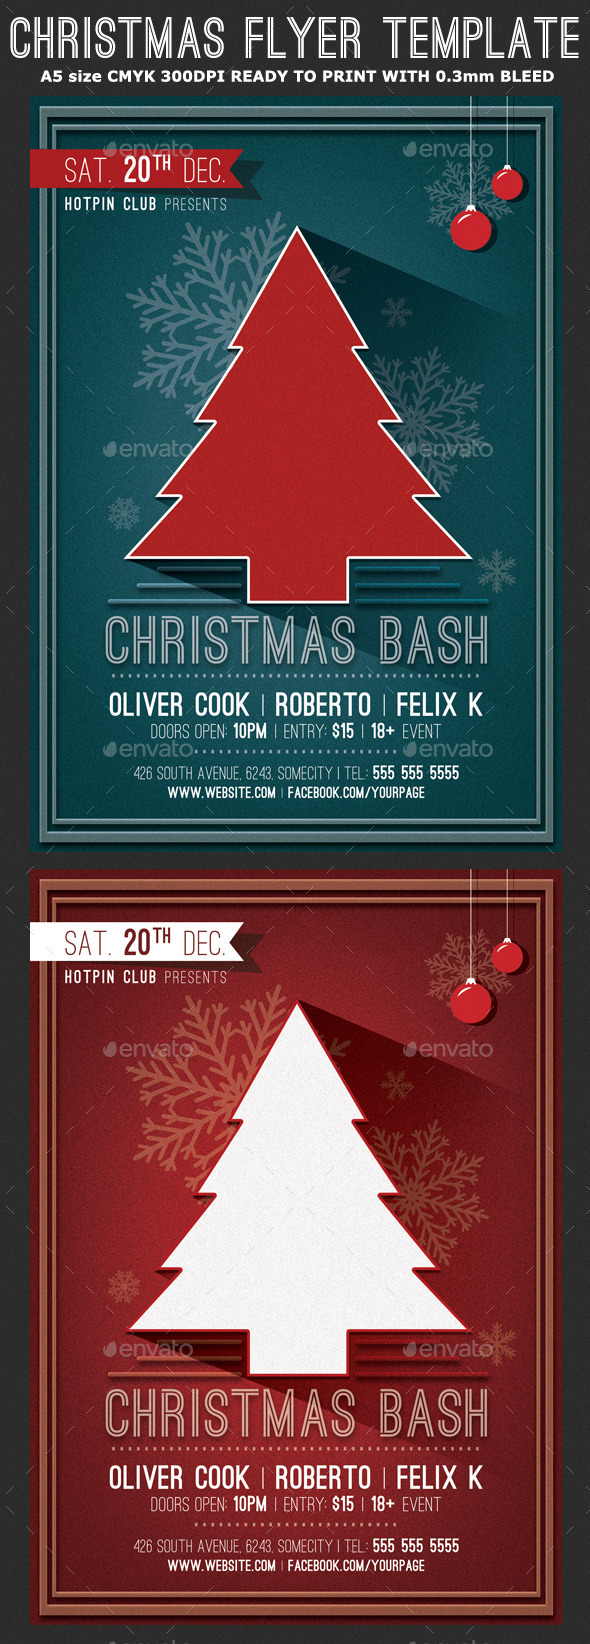 Minimal Christmas Party Flyer Template - Holidays Events